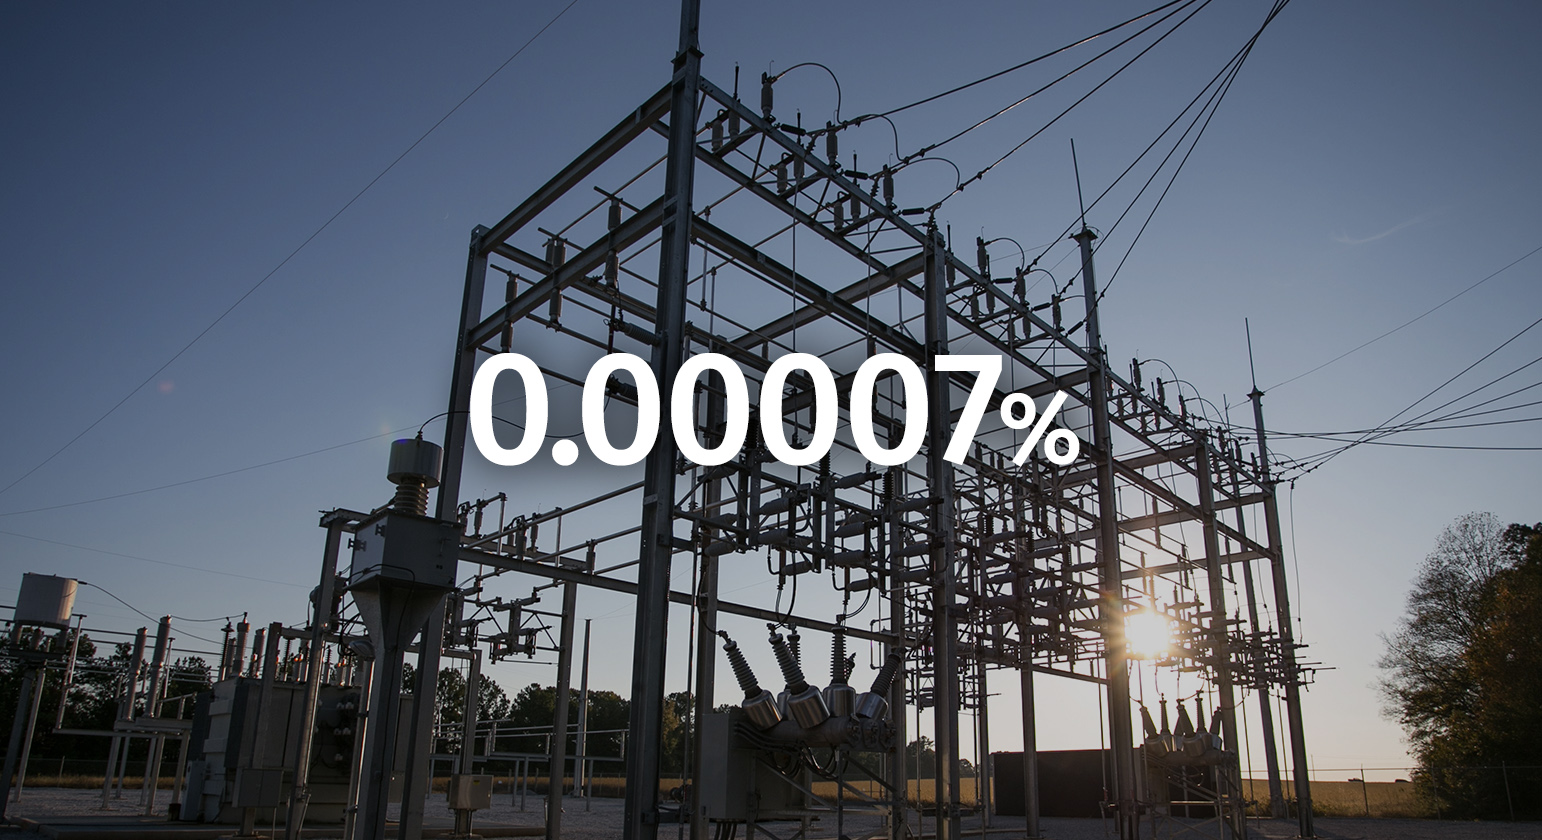 Debunking the Narrative Behind a Power Industry Bailout: 0.00007%